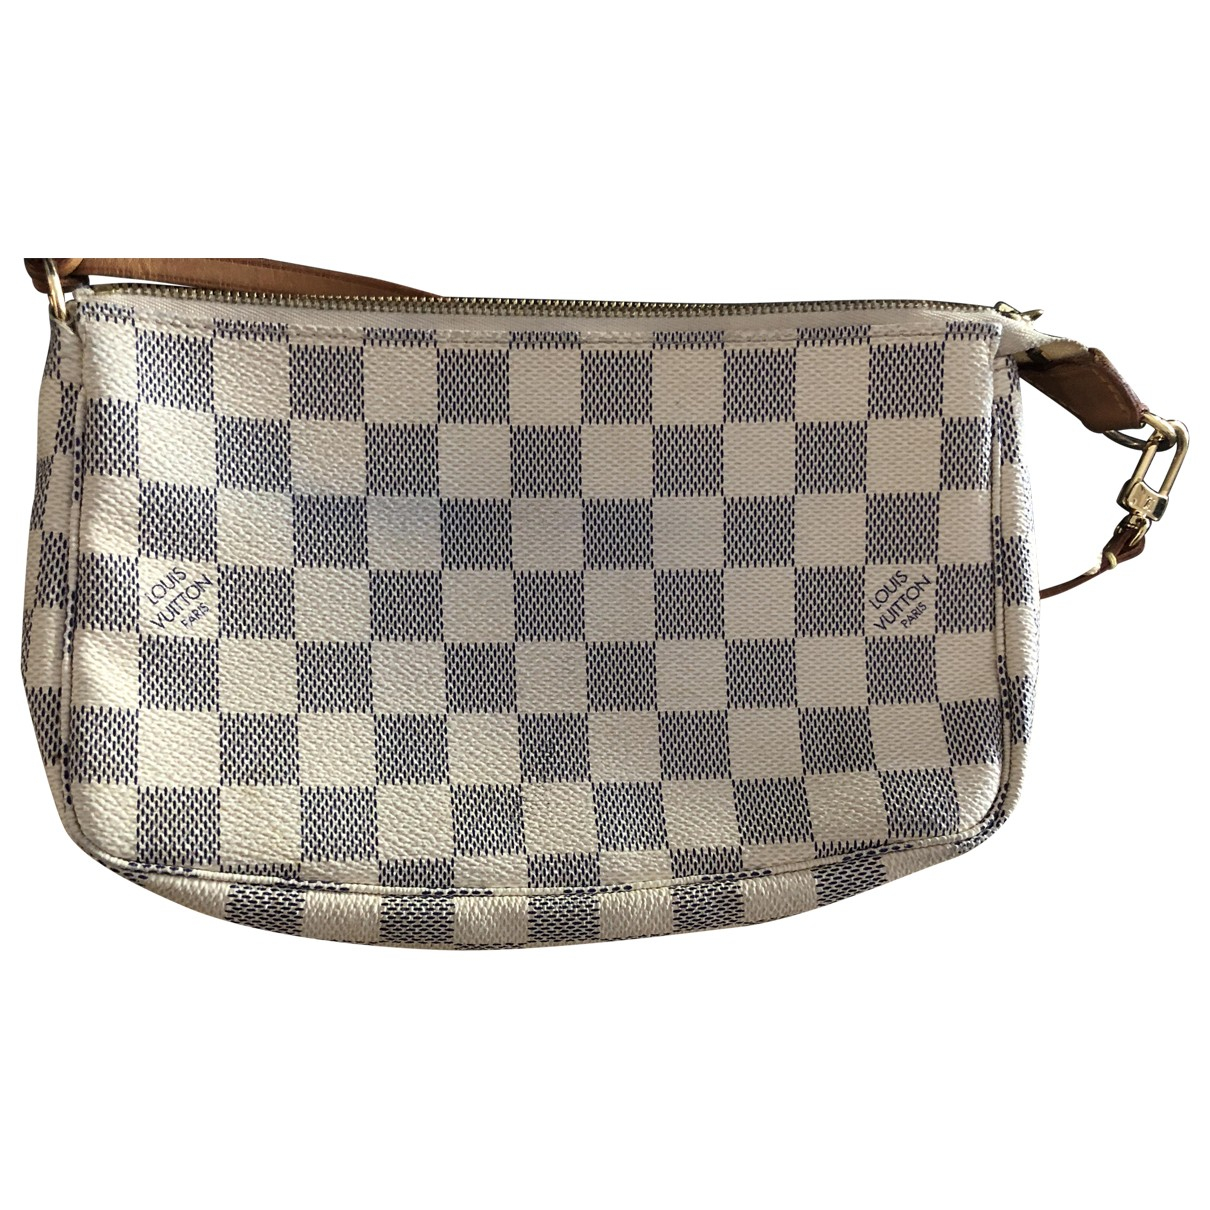 Louis Vuitton Pochette Accessoire Clutch in  Weiss Leinen